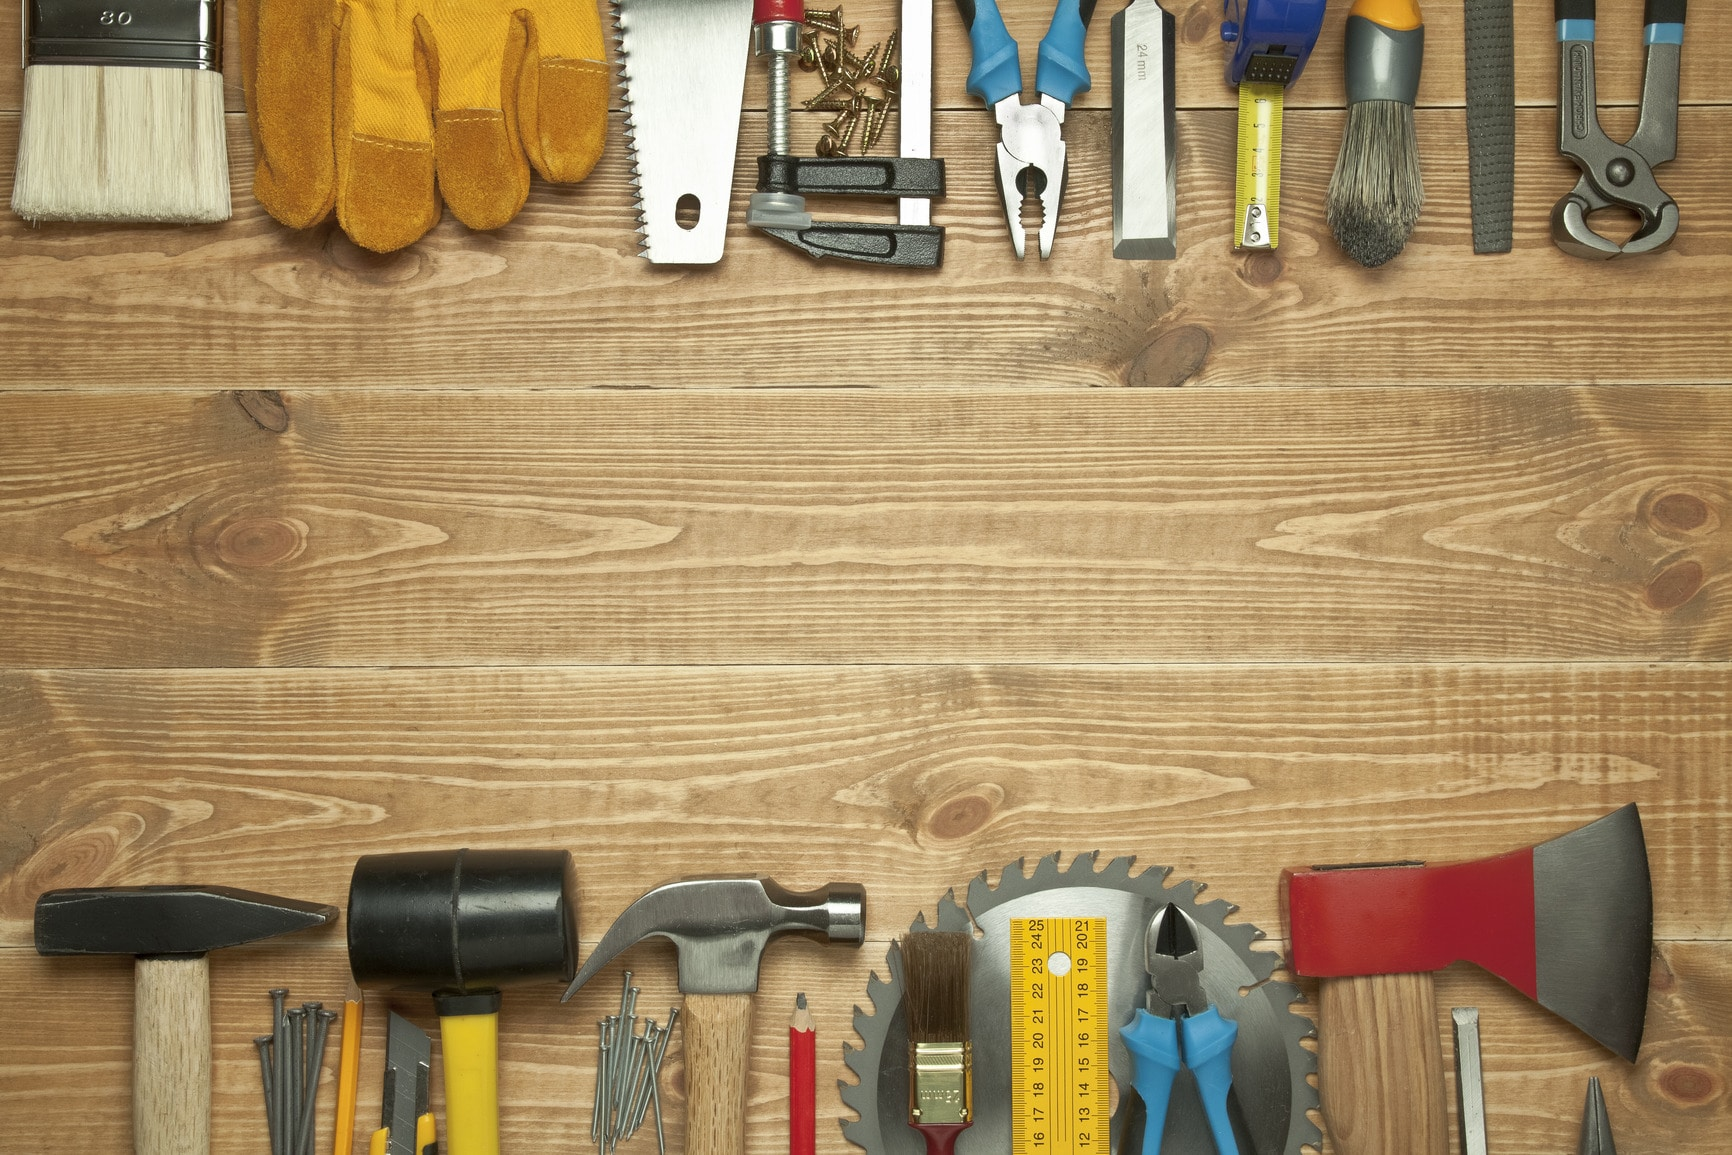 singapore handyman services rates and price lists